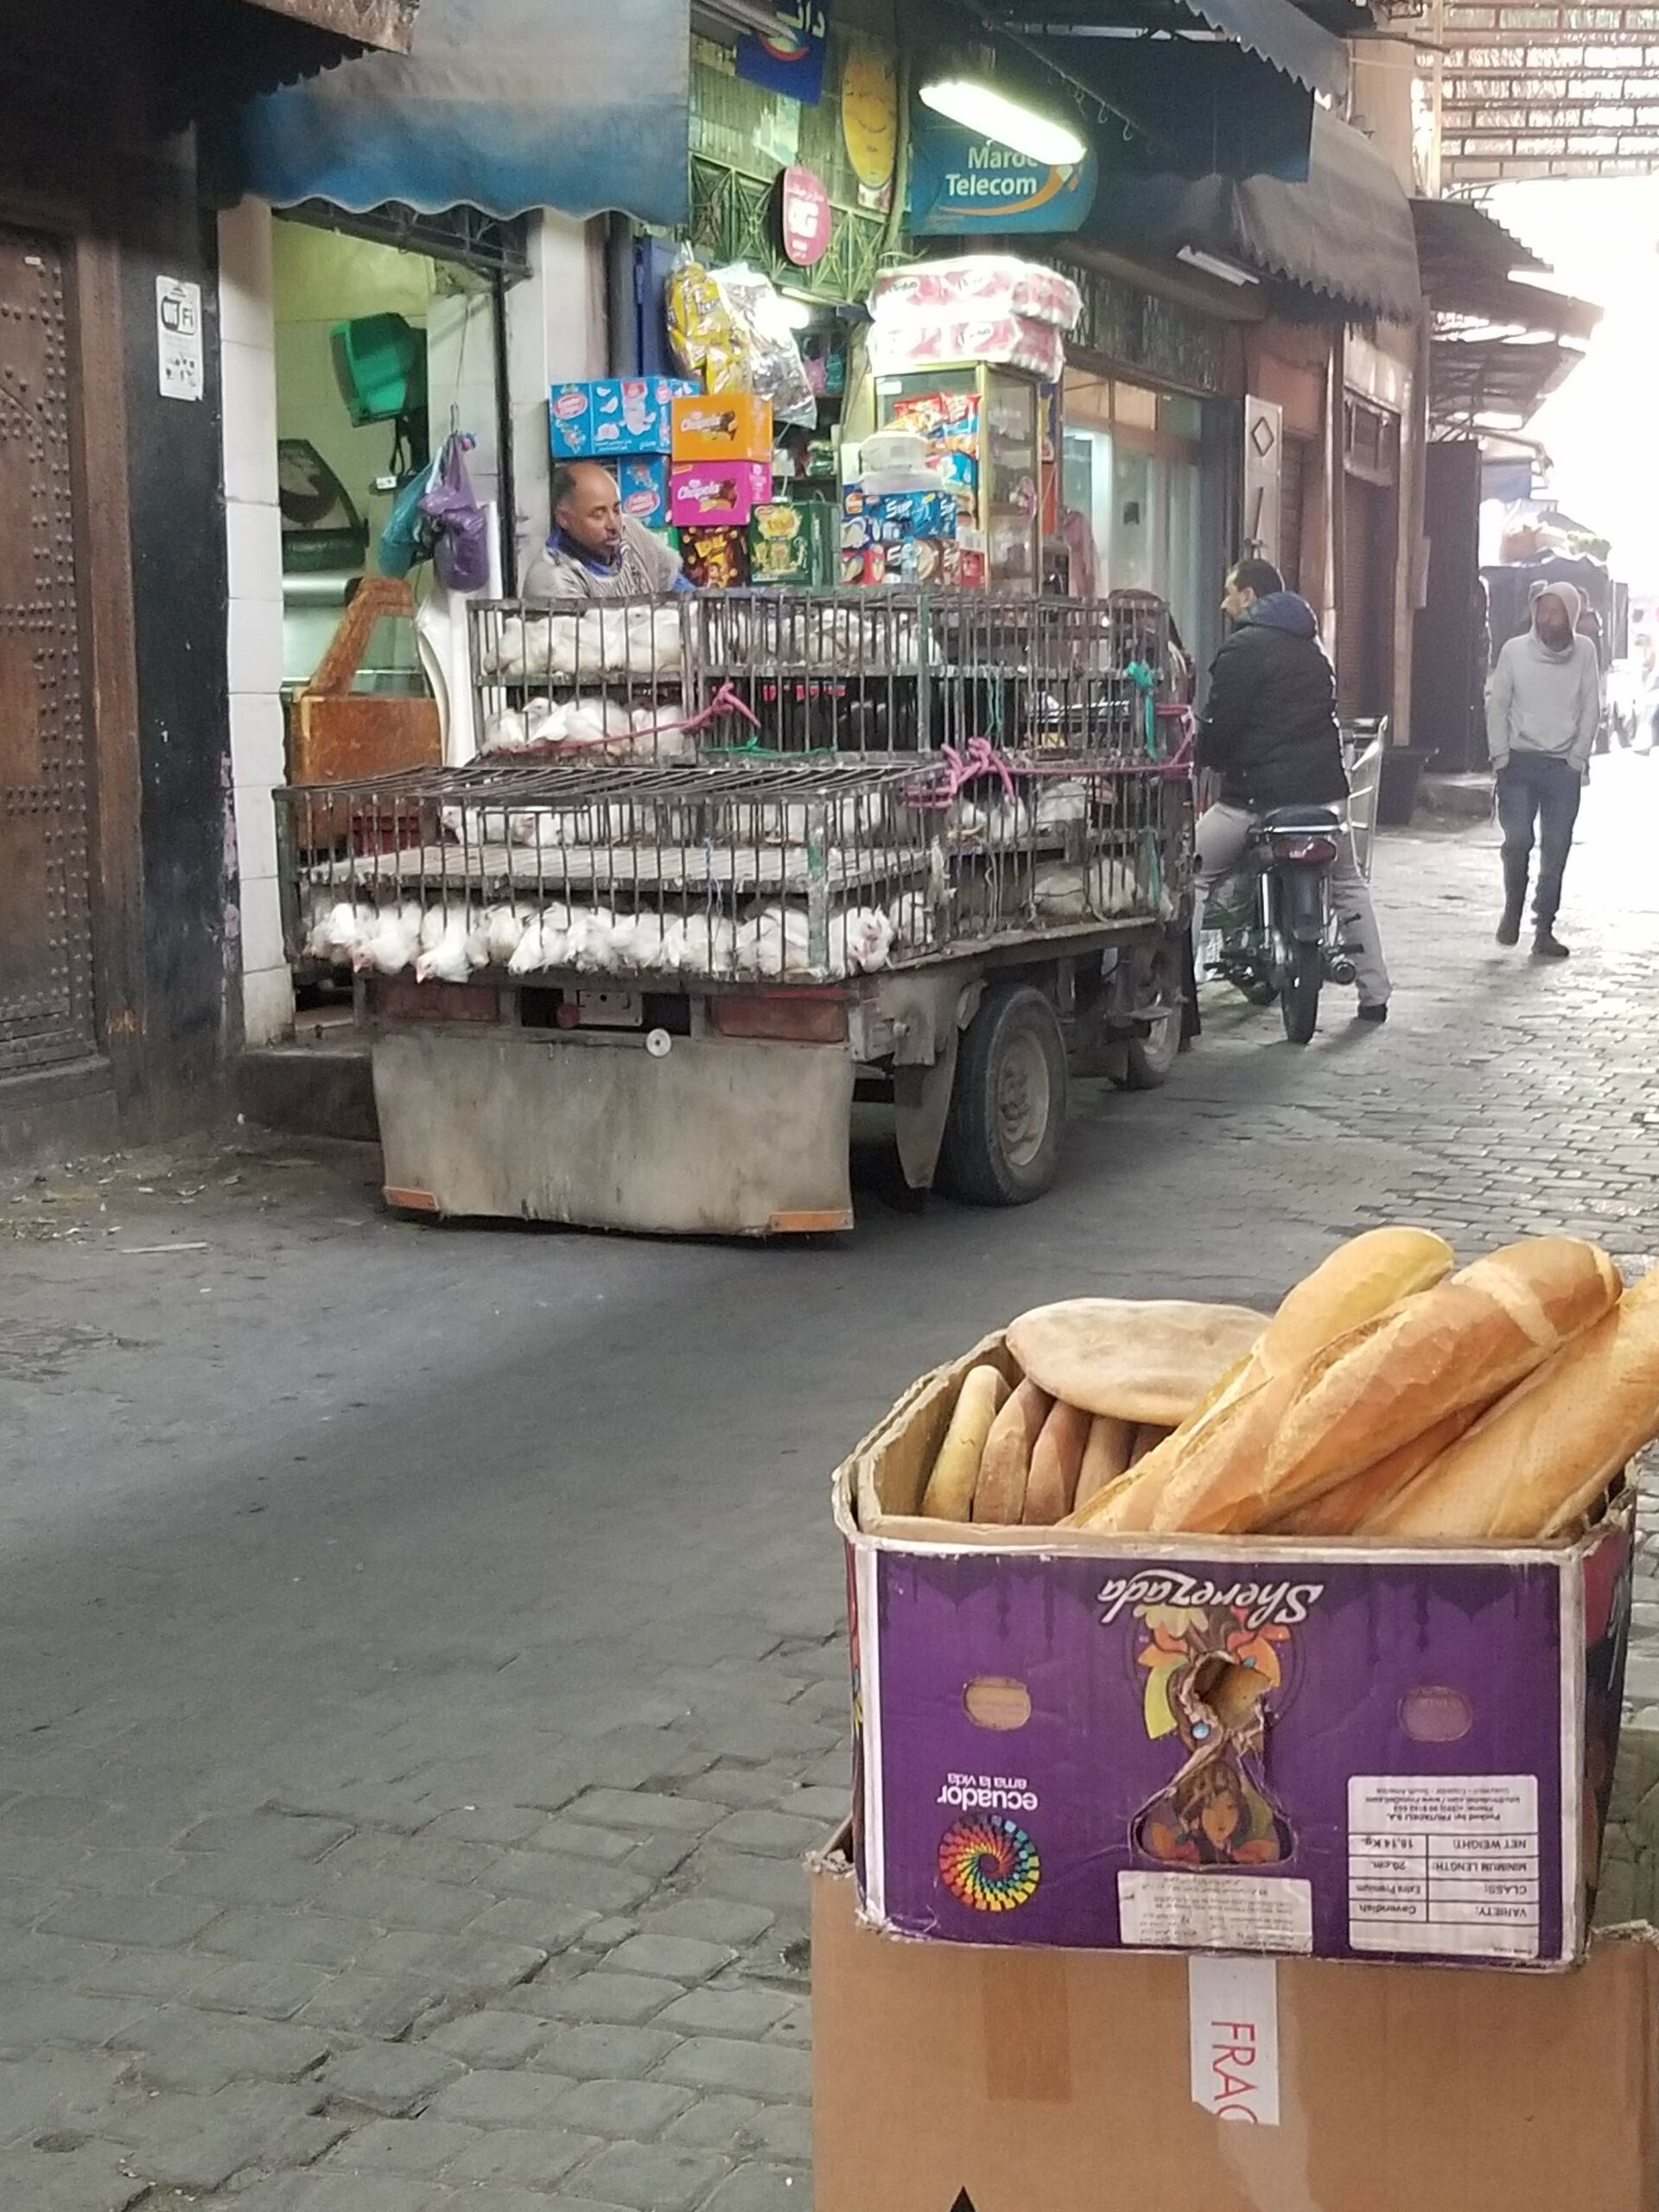 Streets in the medina; yes those are live chickens!